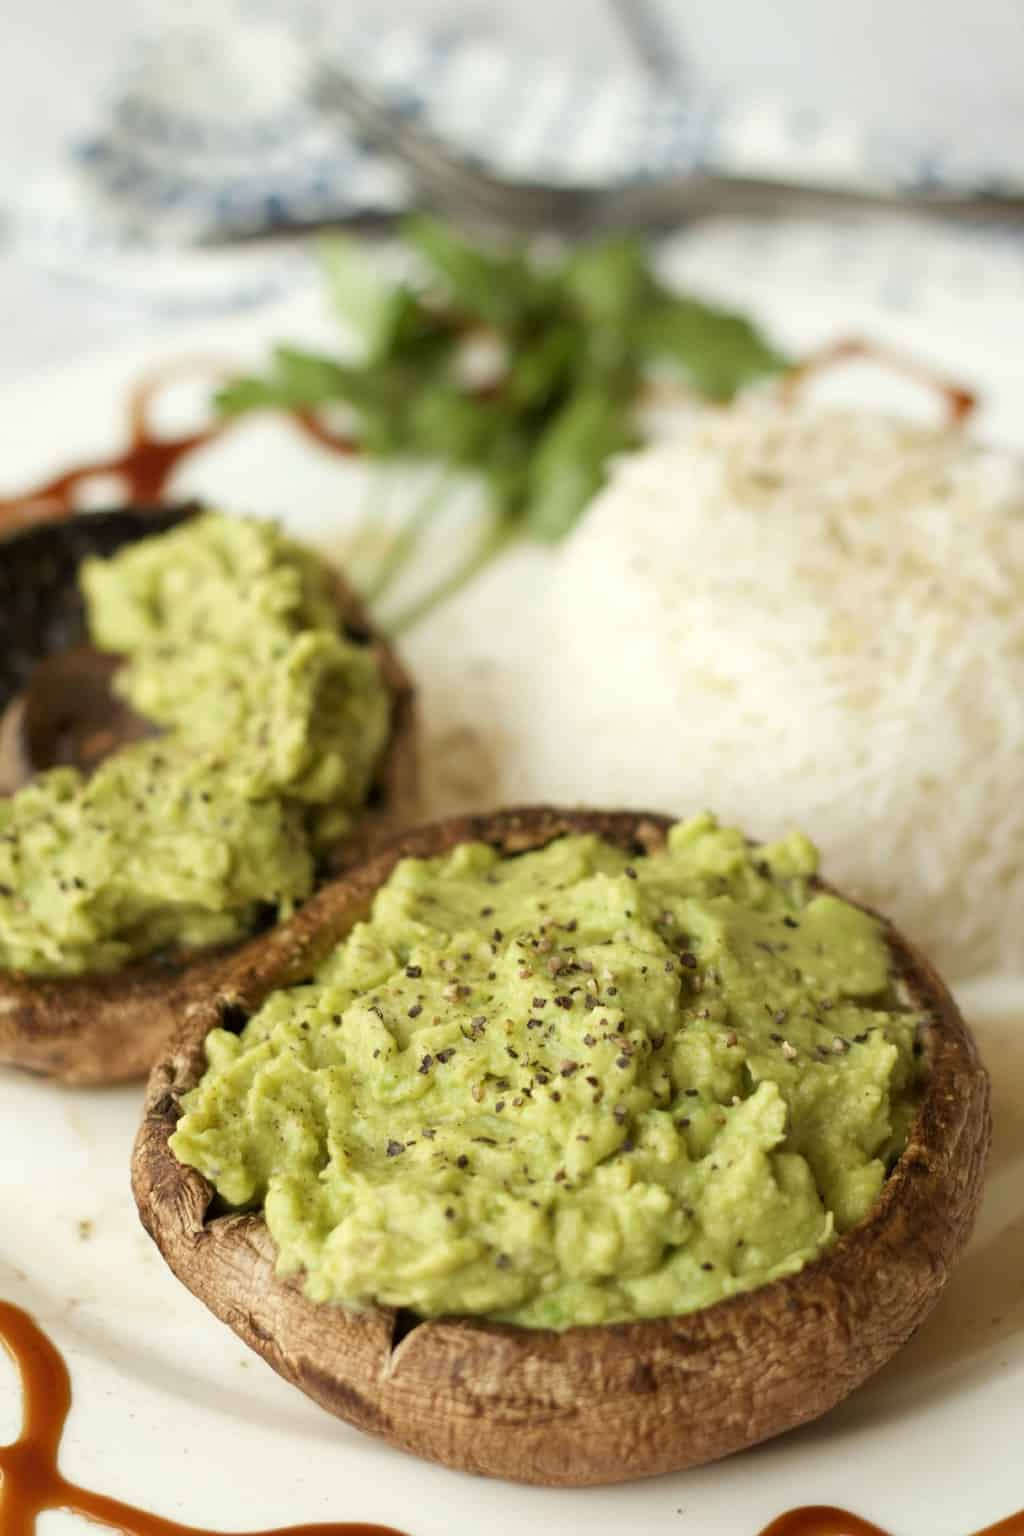 Portobello Mushrooms with Garlic and Avocado. Ideal as an appetizer! #vegan #lovingitvegan #dairyfree #glutenfree